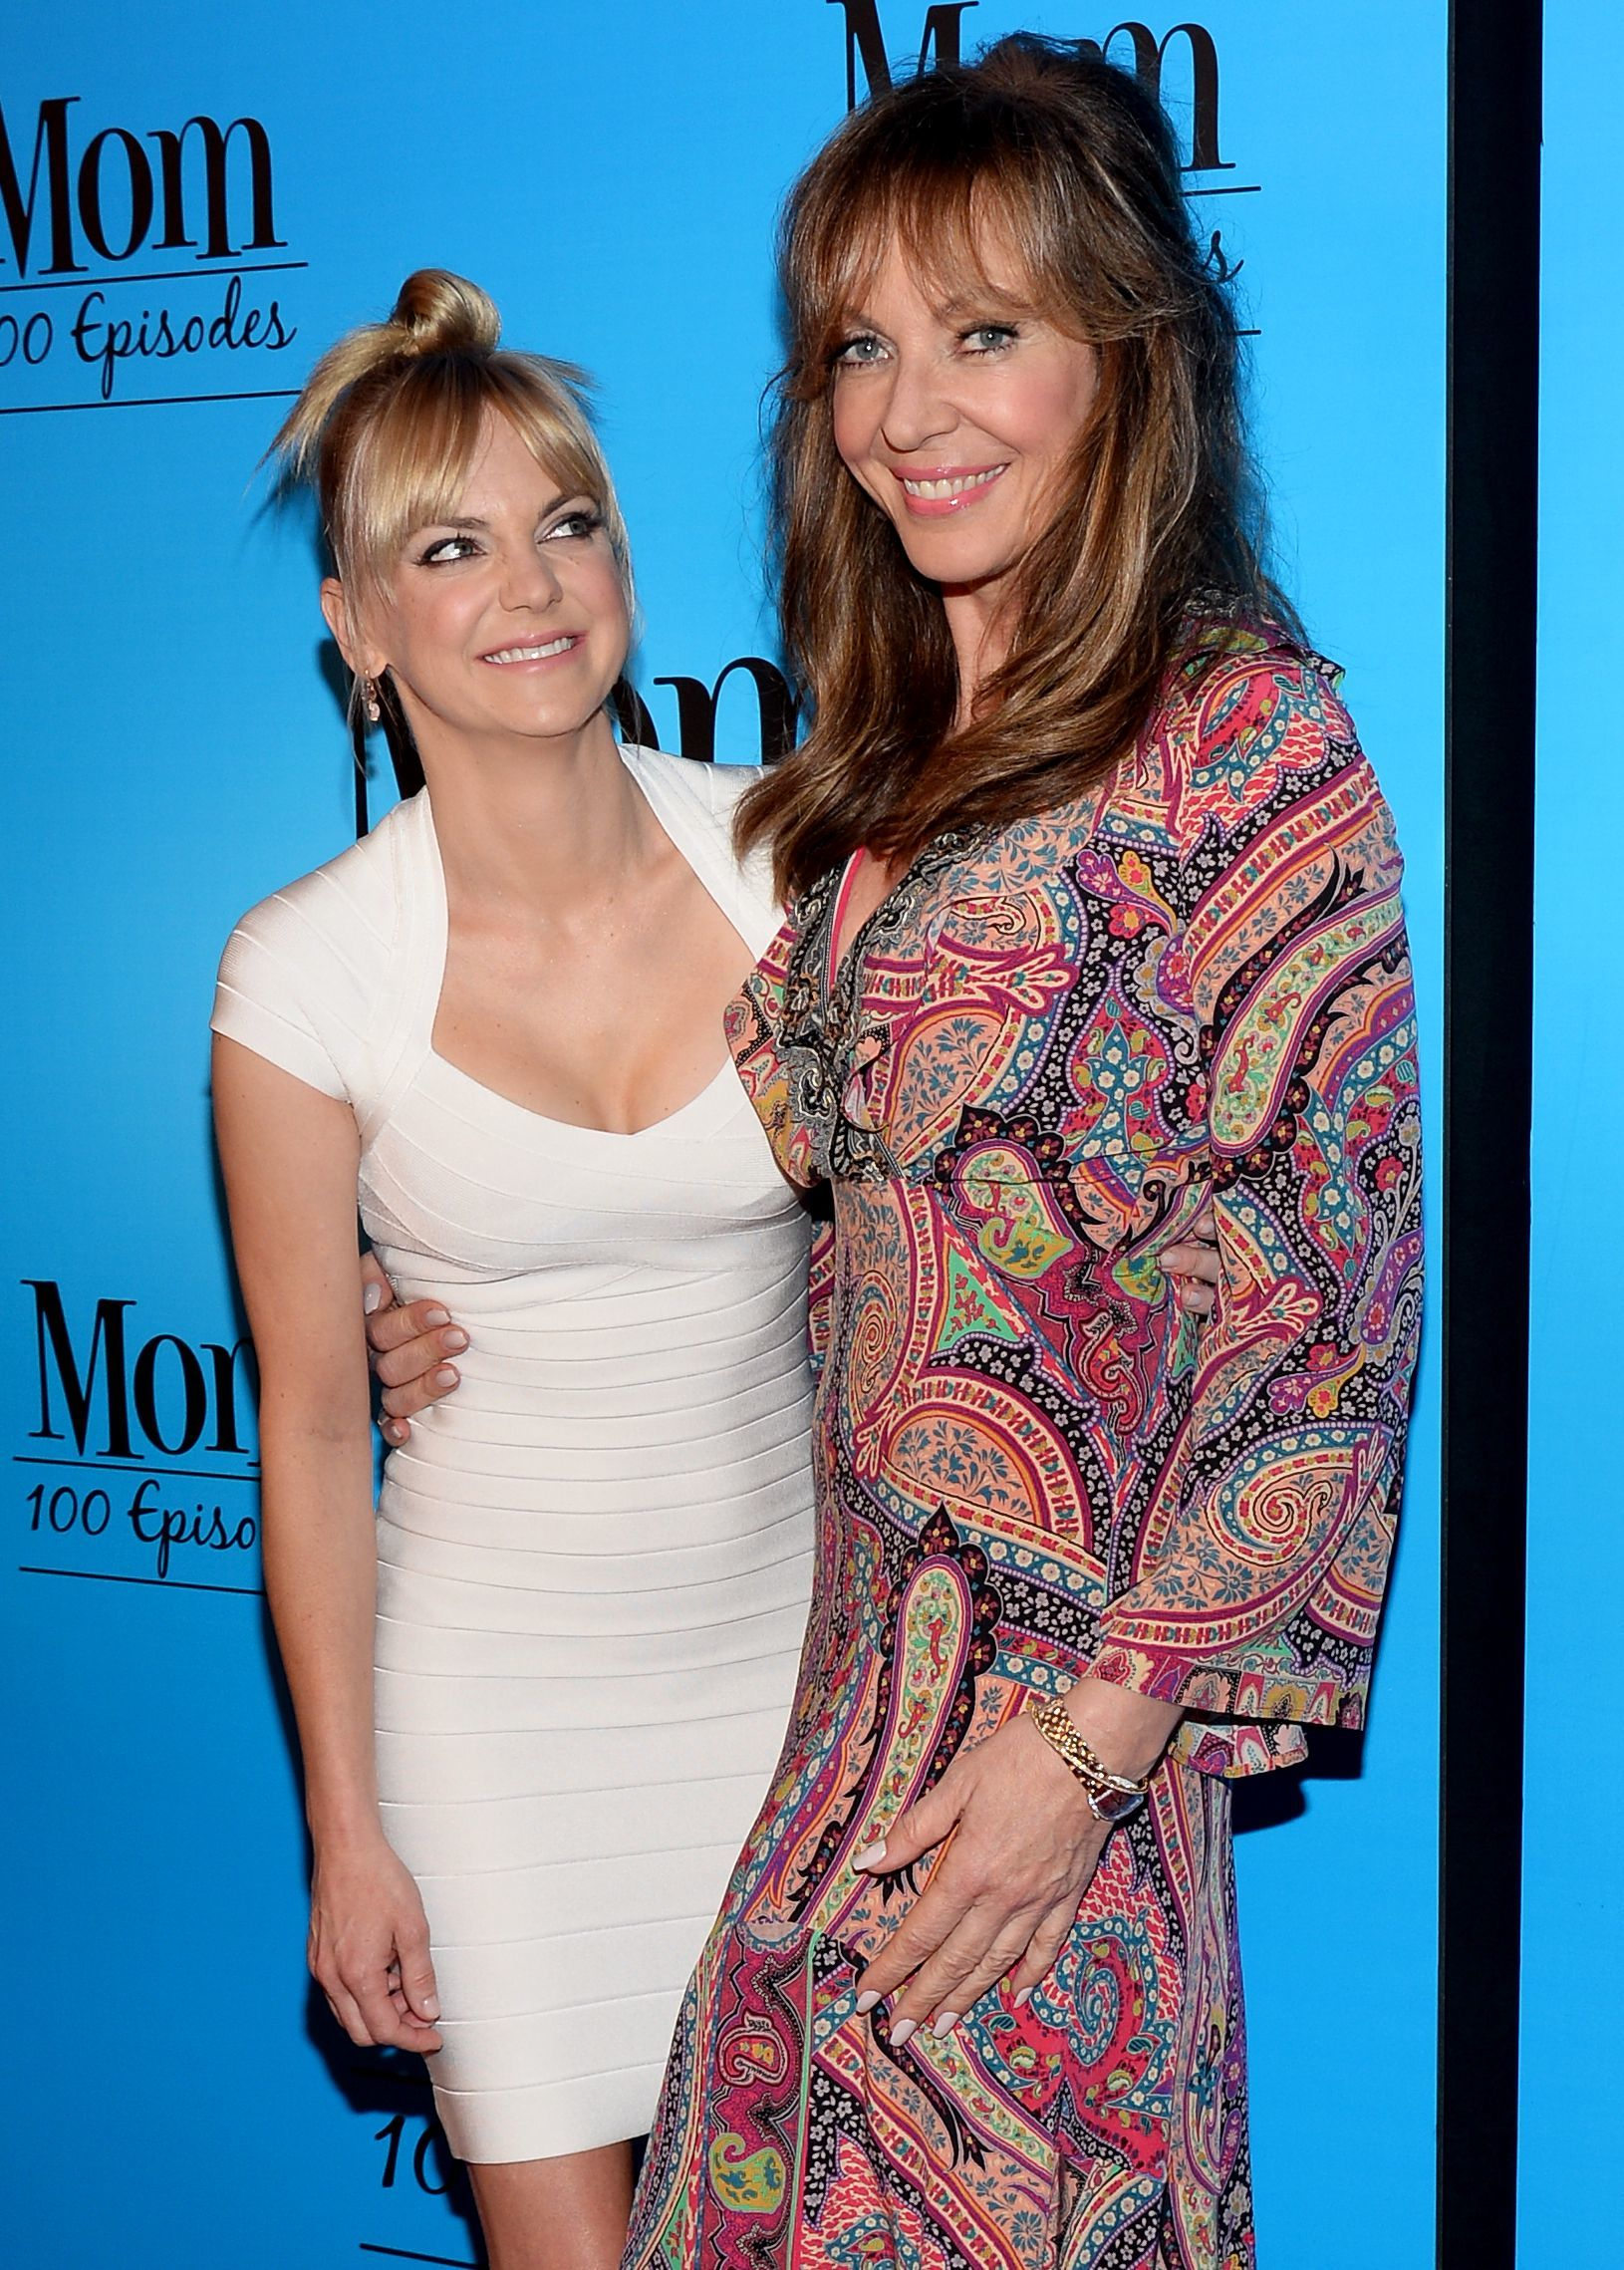 """Anna Faris and Allison Janney attend the """"Mom"""" 100th Episode Celebration in Los Angeles on Jan. 27, 2018."""